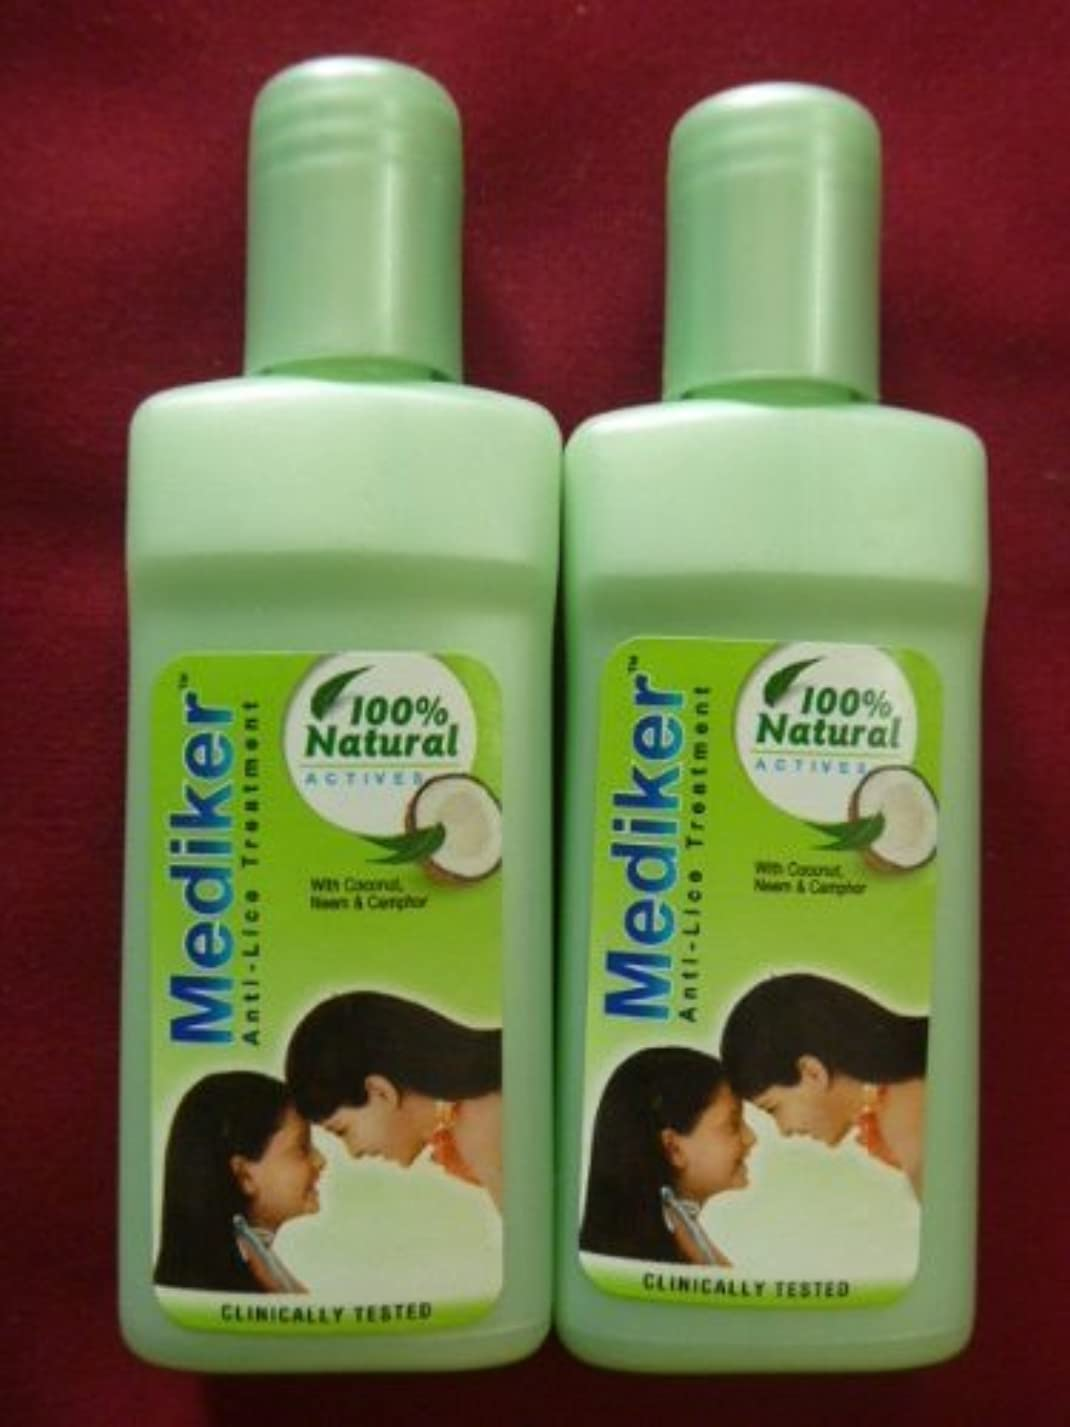 バリケード選択ドール2 X Mediker Anti Lice Remover Treatment Head Shampoo 100% Lice Remove 50ml X 2 = 100ml by Mediker [並行輸入品]